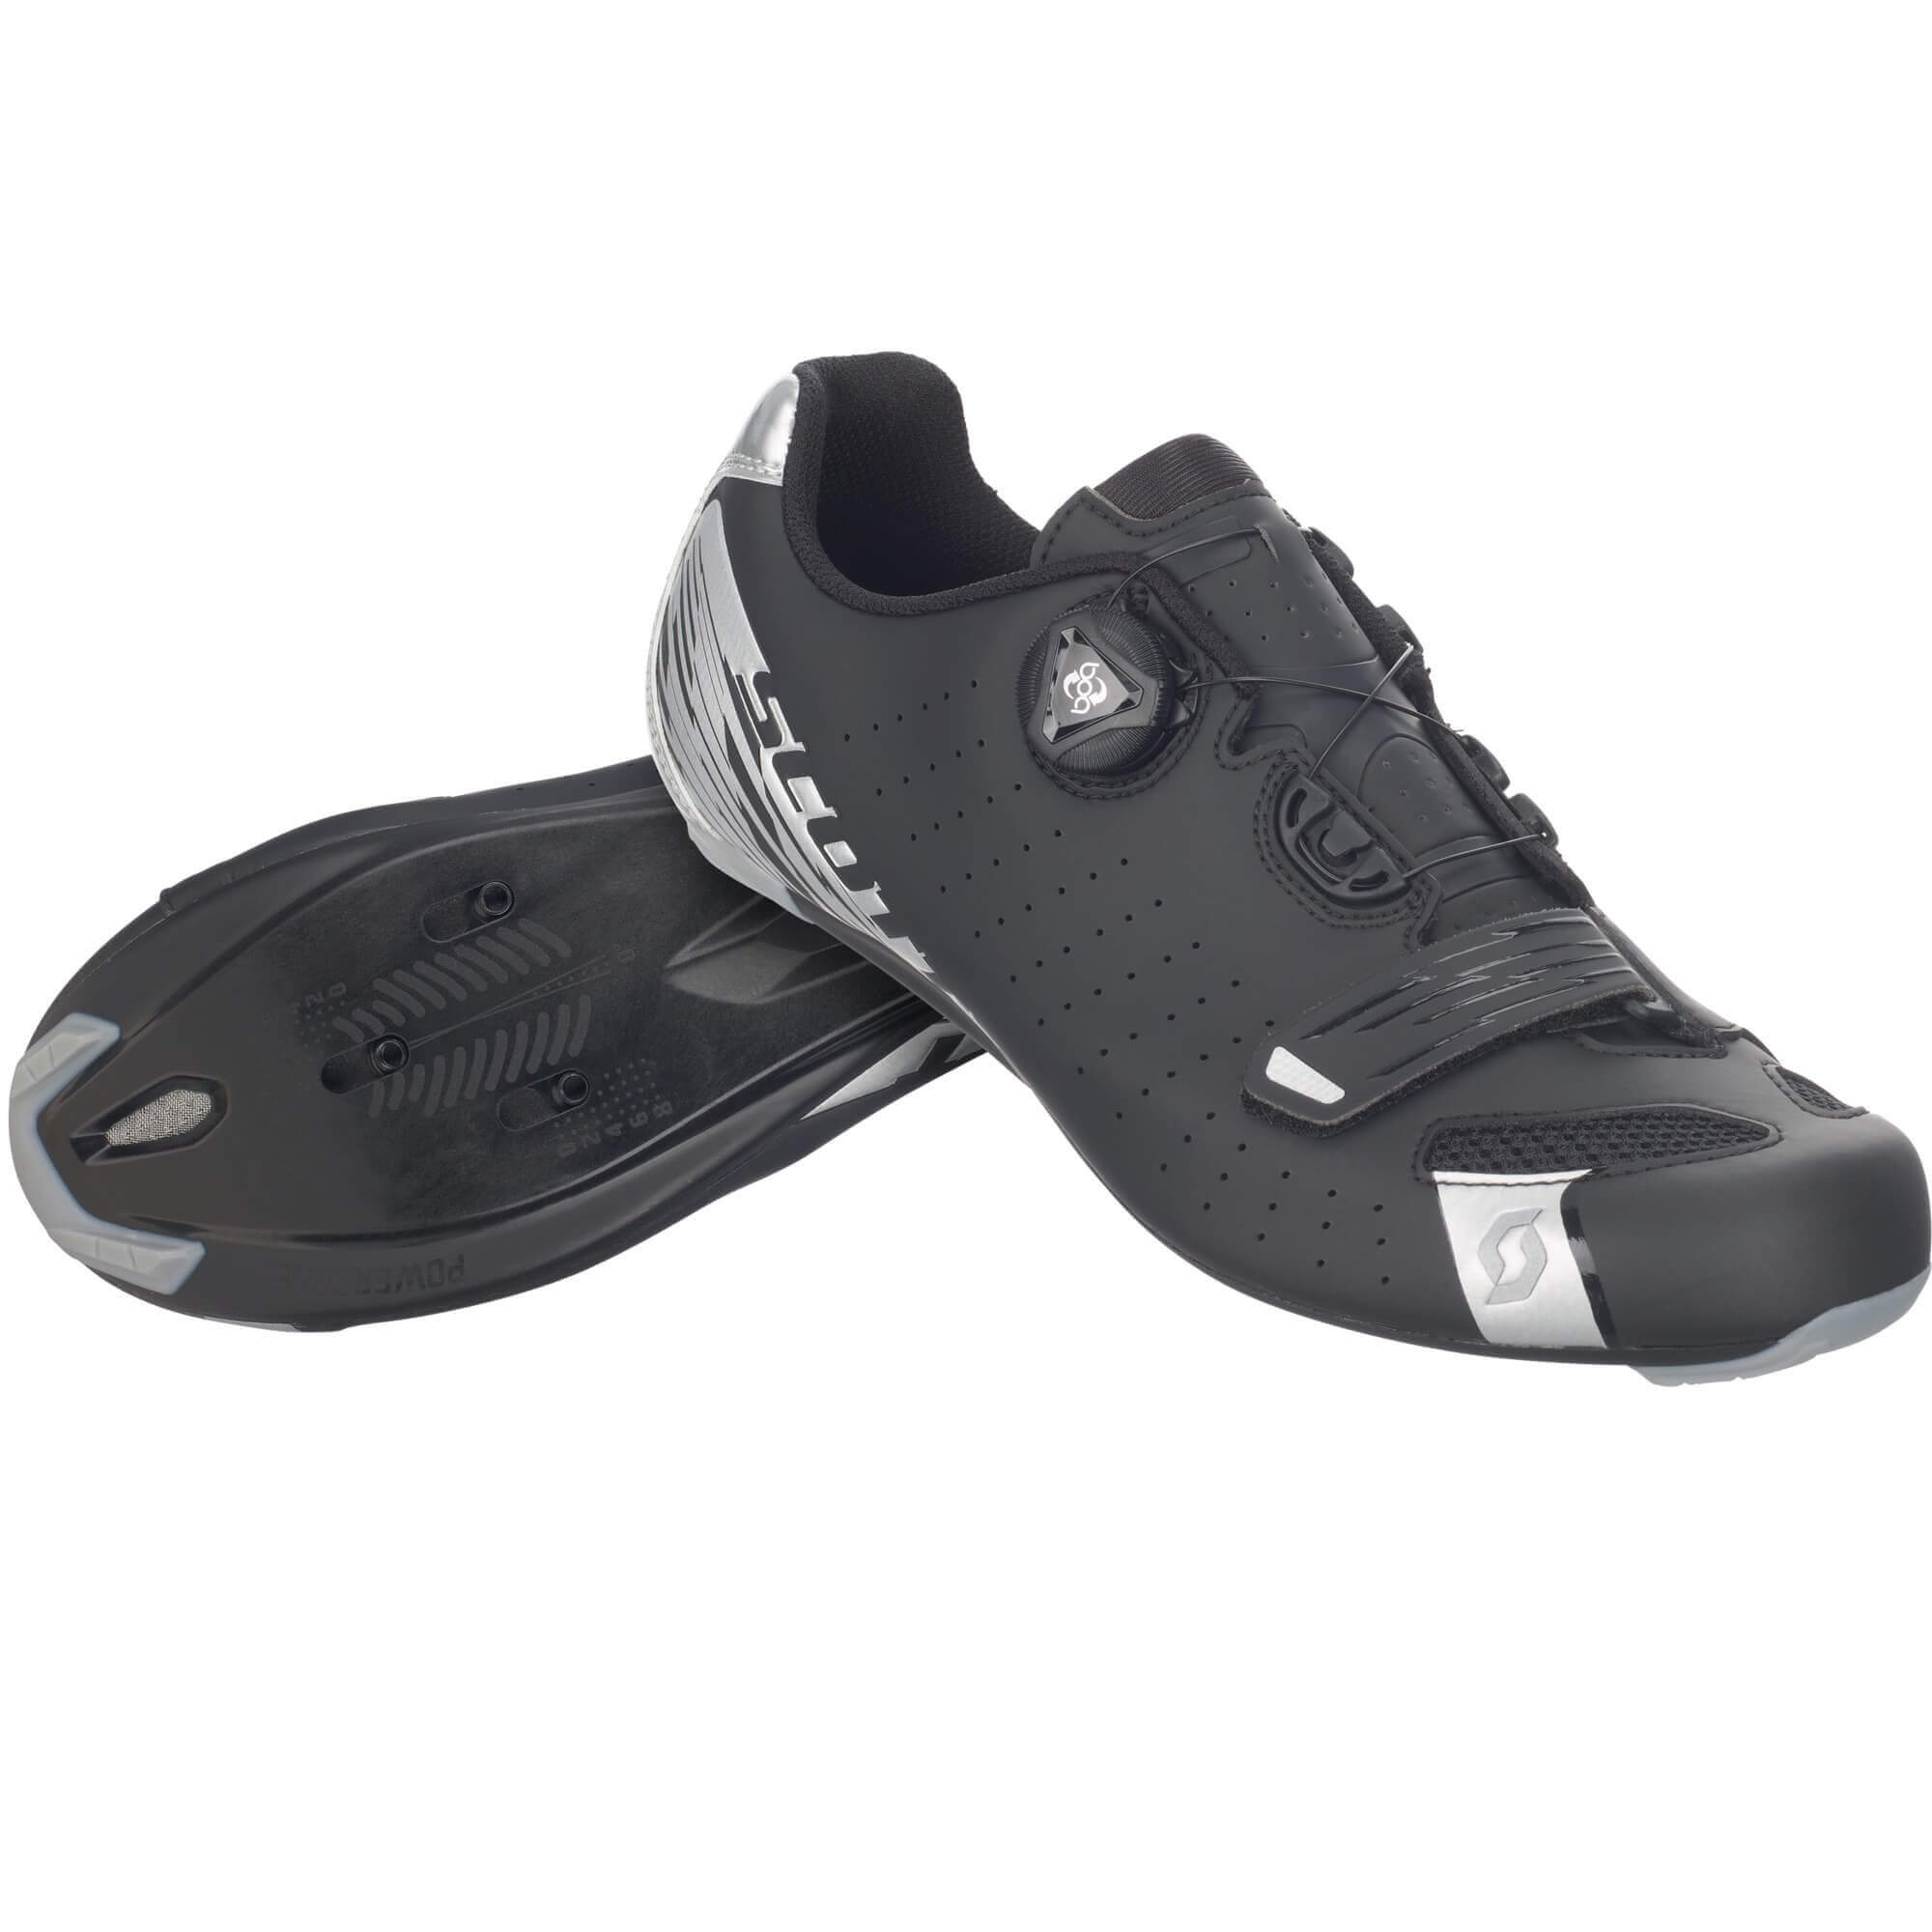 Scott Road Comp Boa Cycling Shoe Black/ Silver 2017